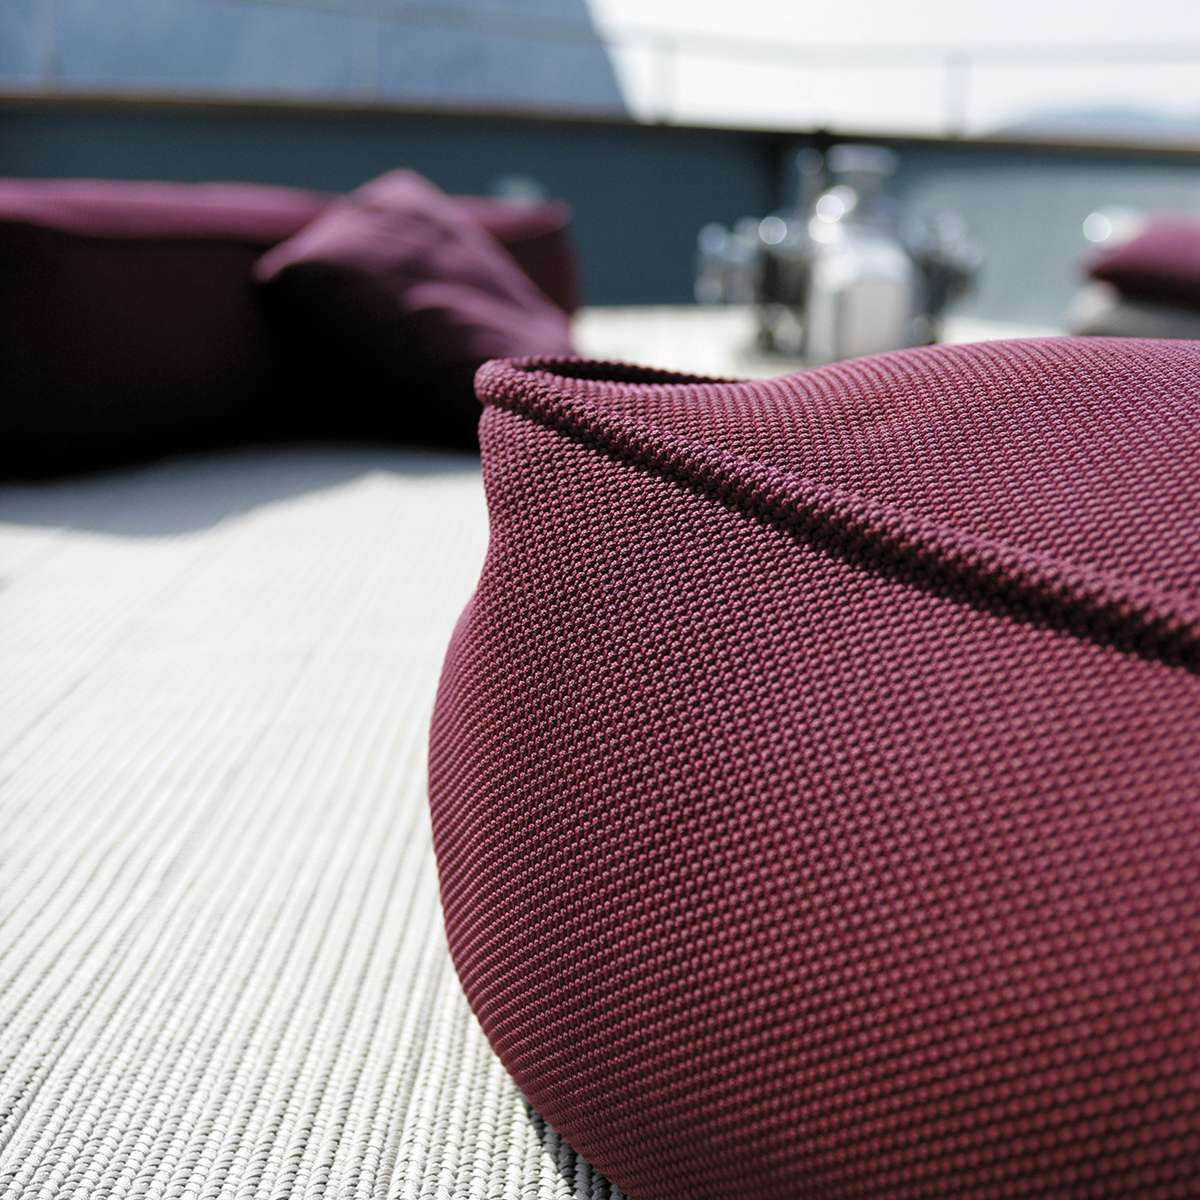 Float Paola Lenti Hr Detail